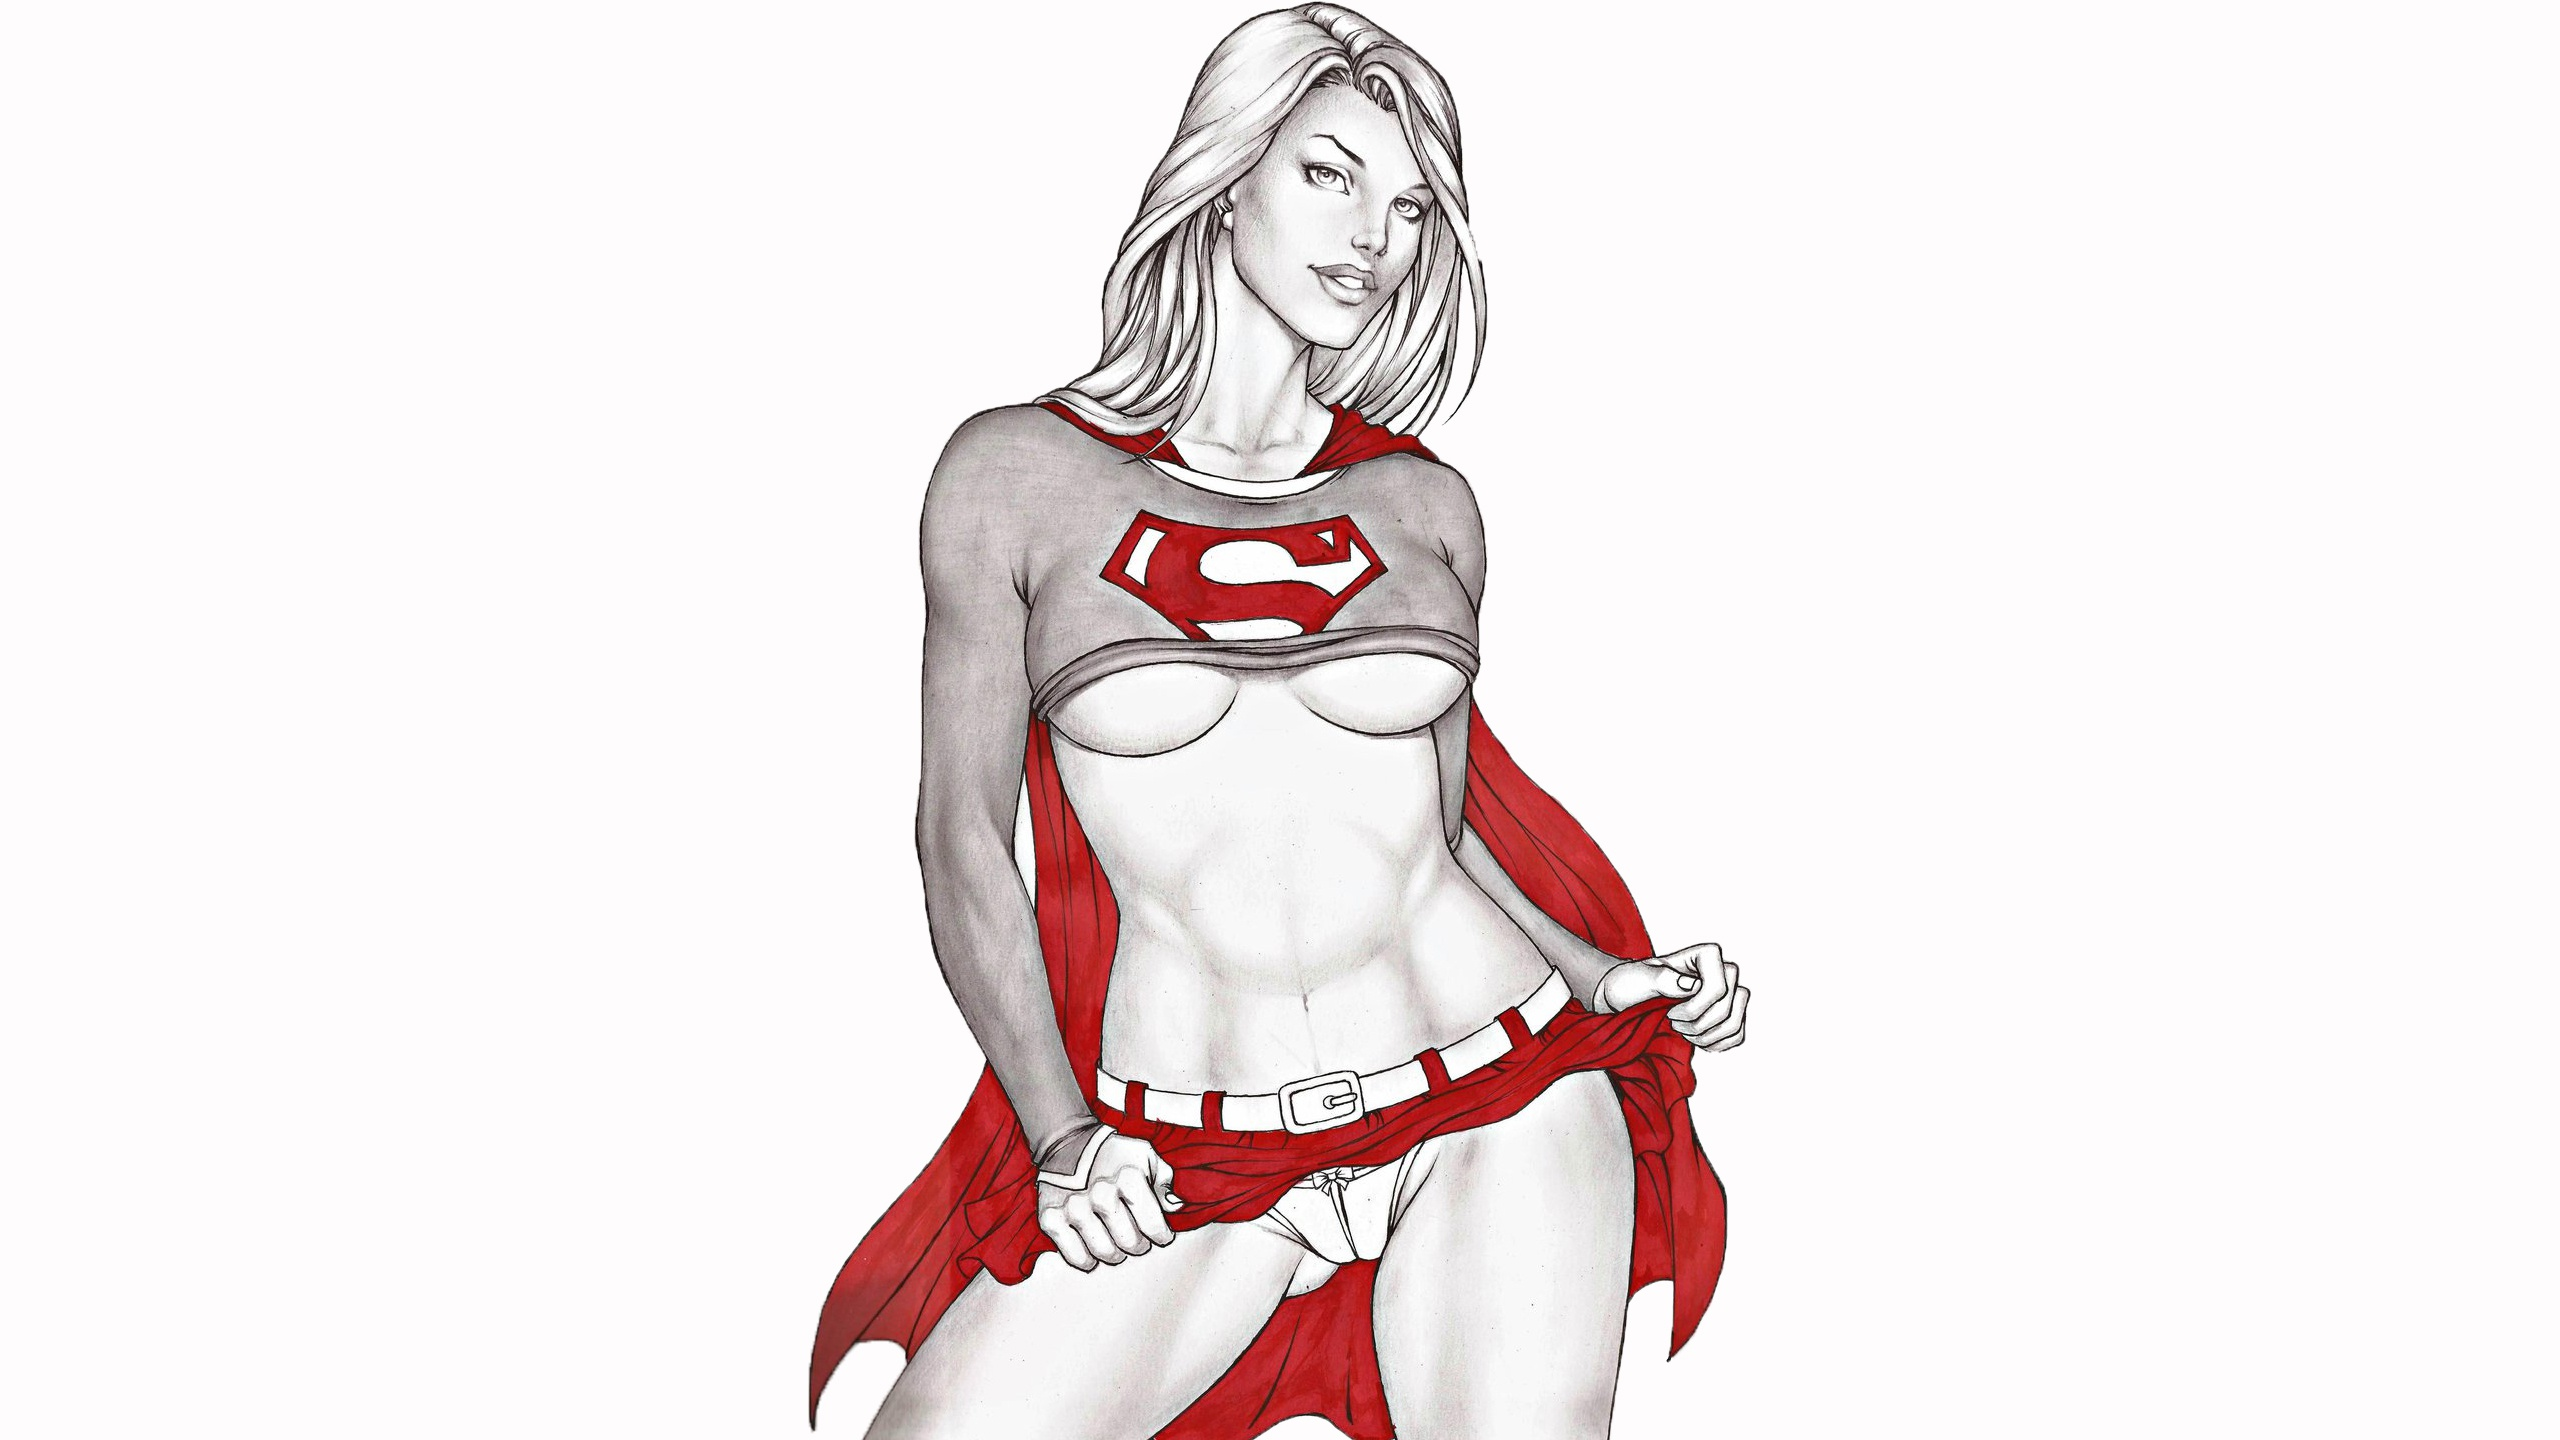 General 2560x1440 artwork Supergirl DC Comics DC Universe underboob drawing white background white selective coloring